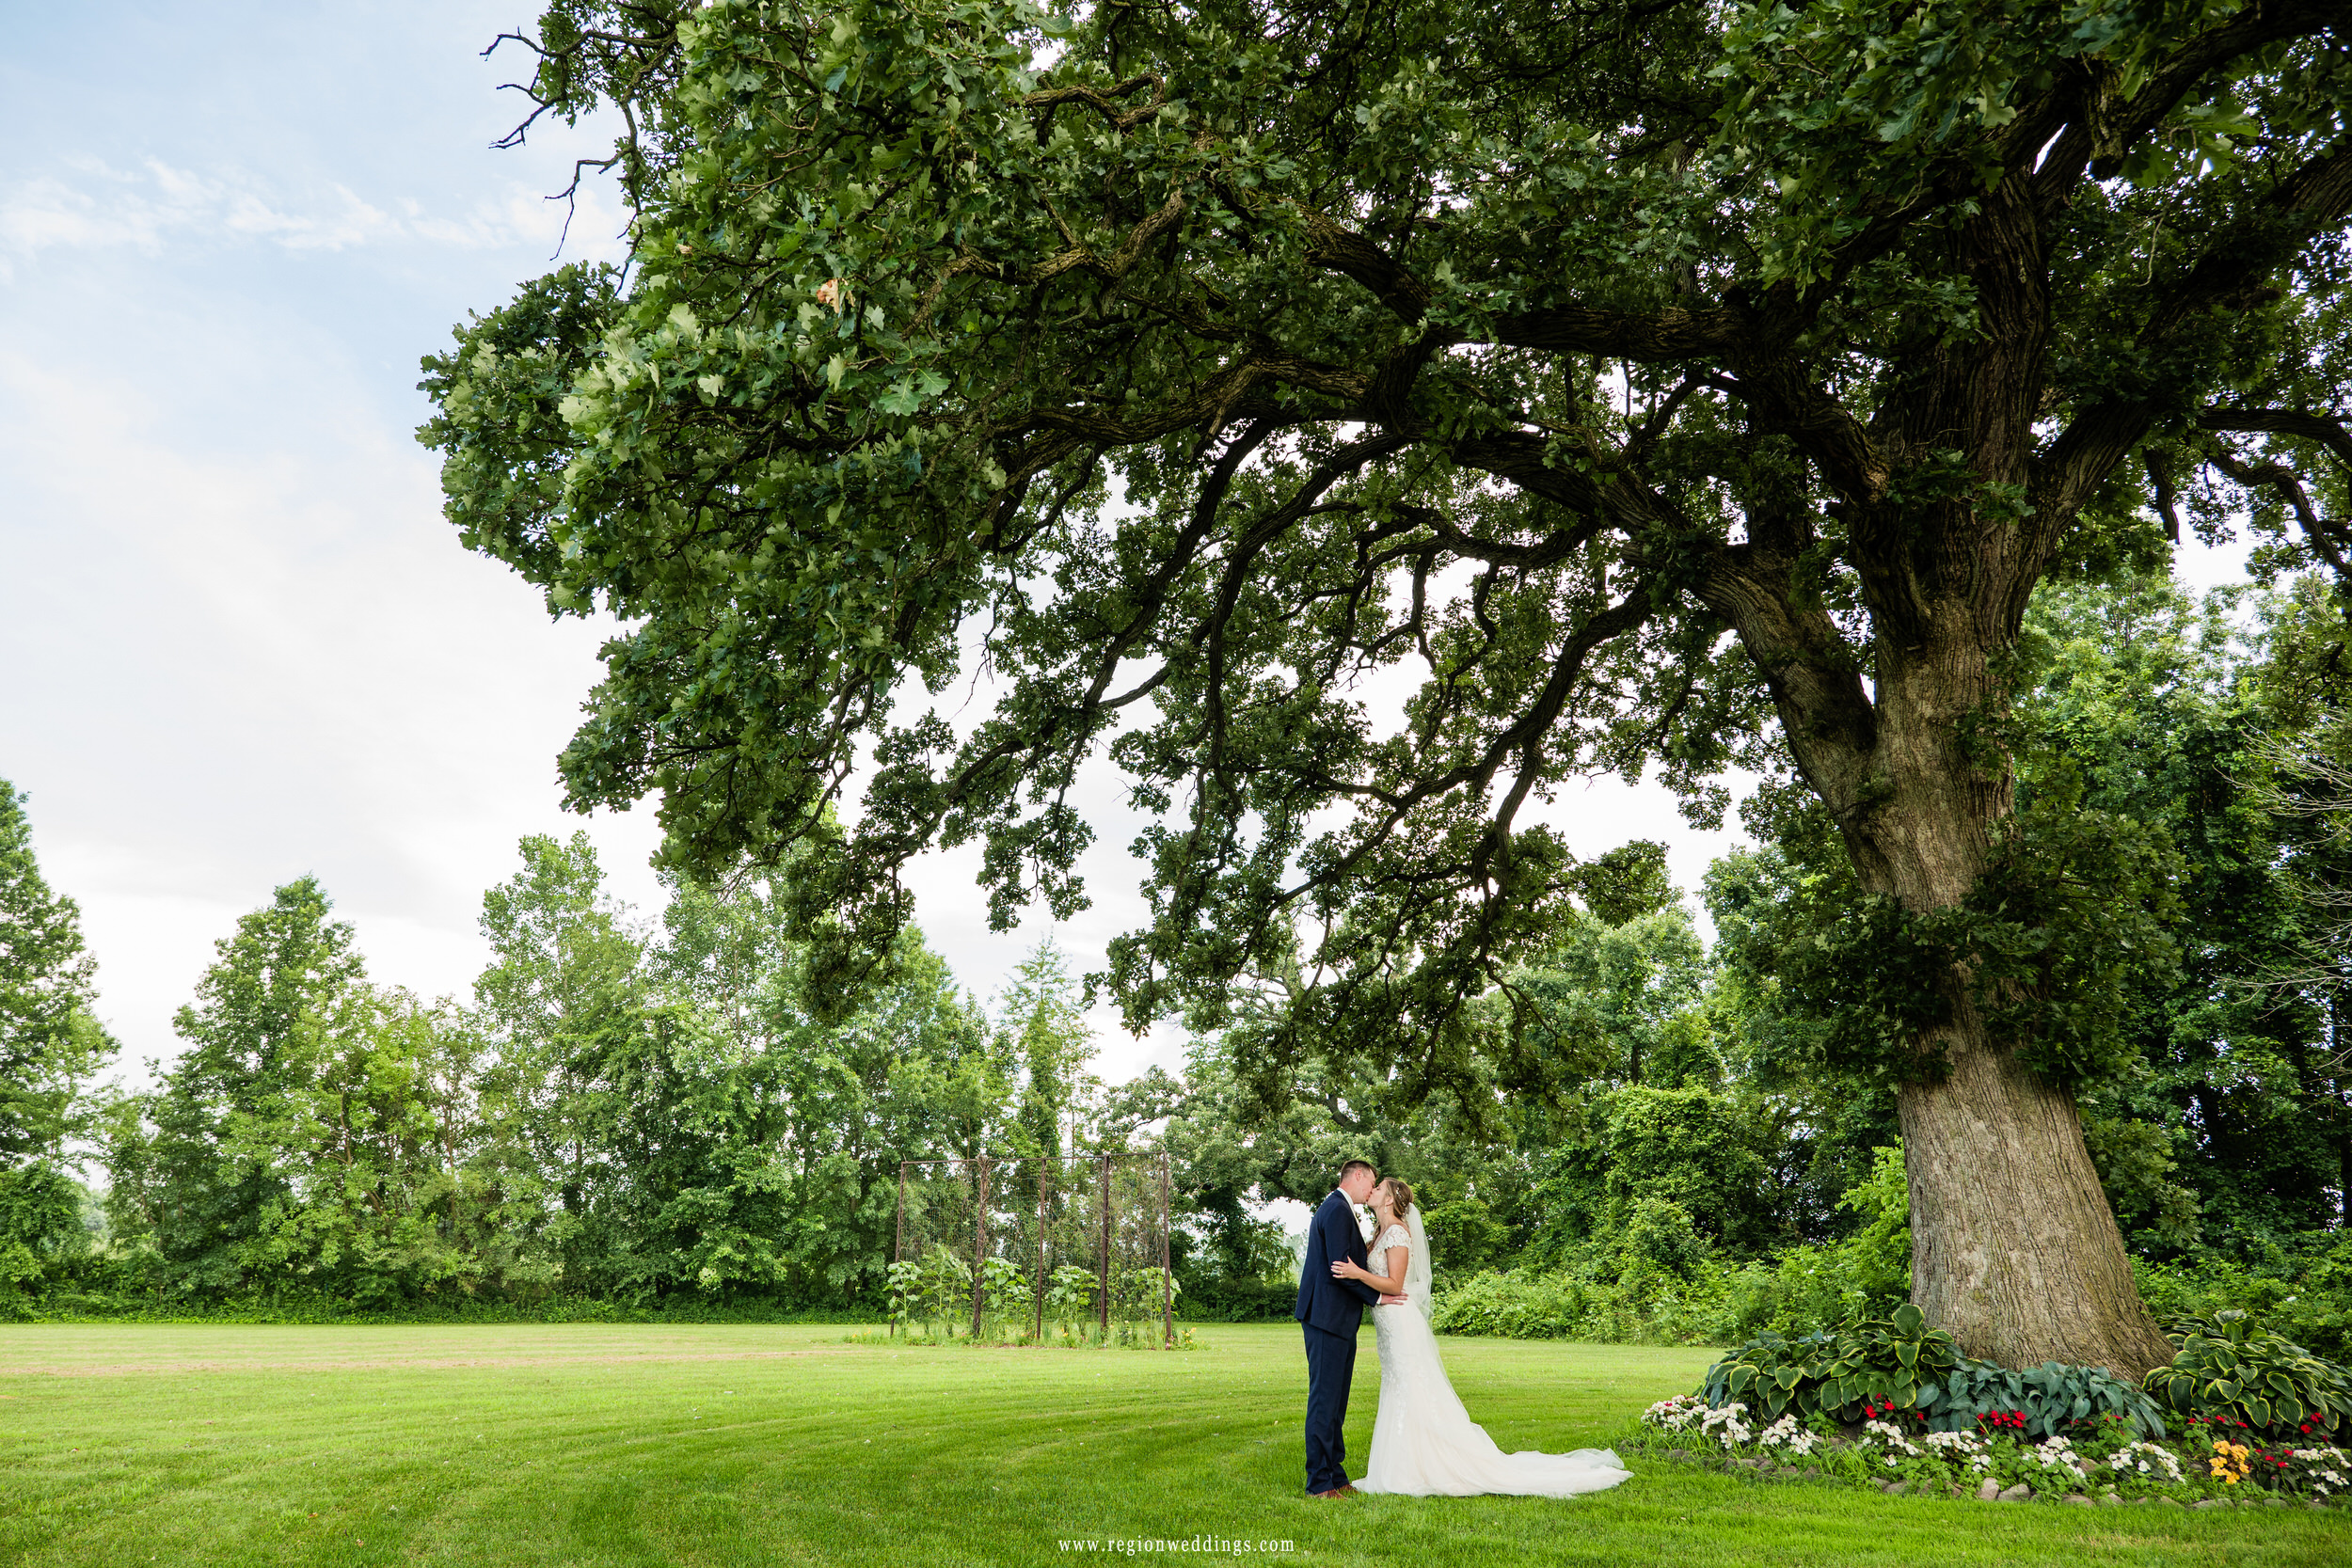 A romantic kiss underneath a giant oak tree.